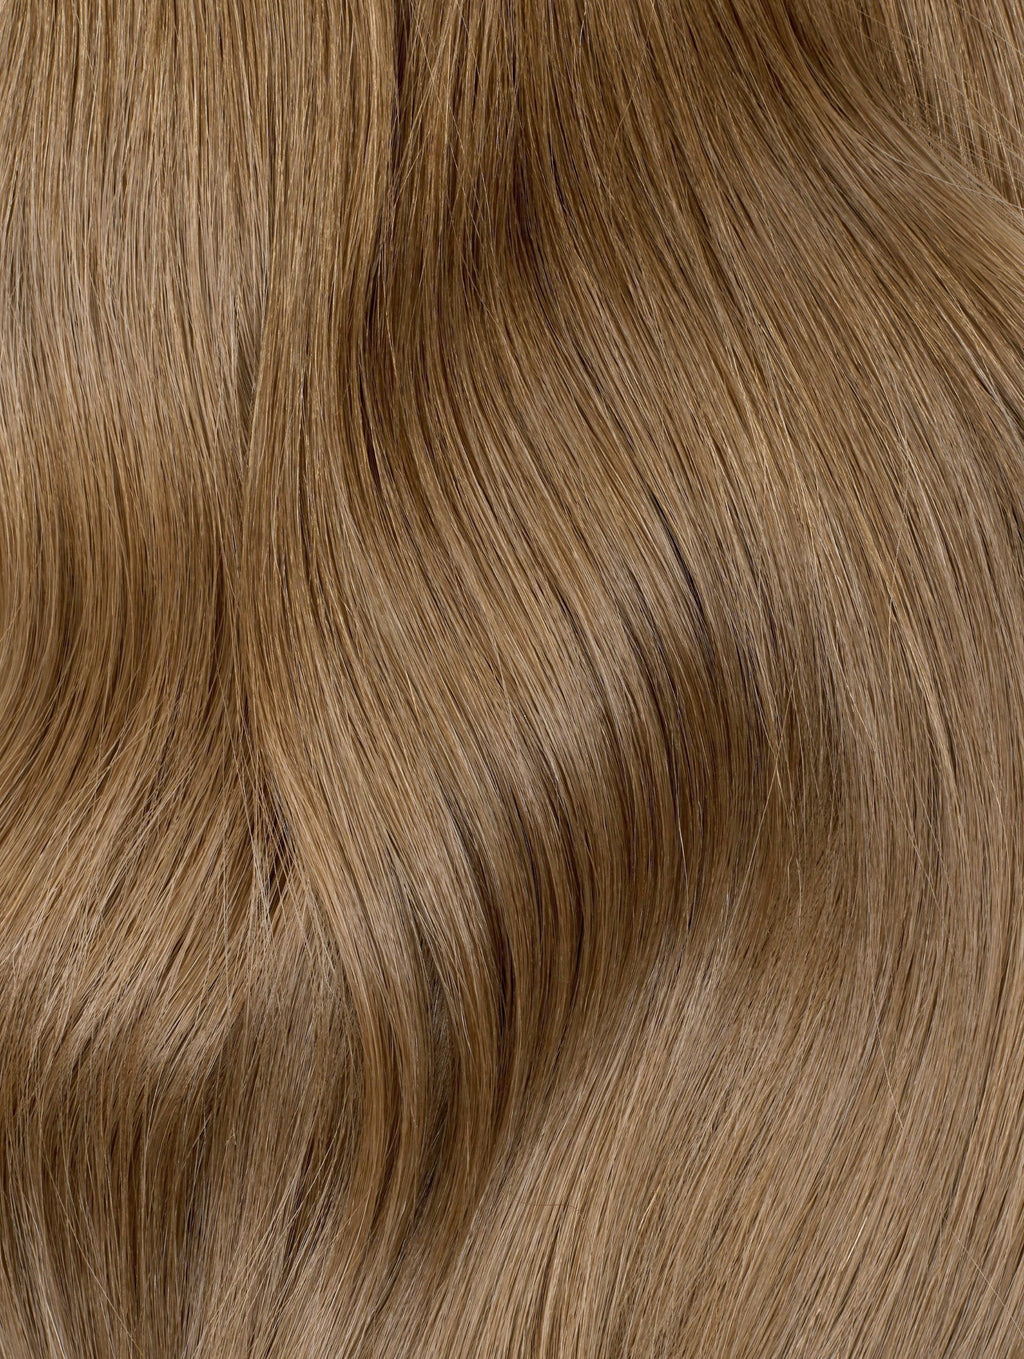 "Caramel Brown (5B) 18"" 100g - Weave Weft - BOMBAY HAIR  - Weaving Weft"